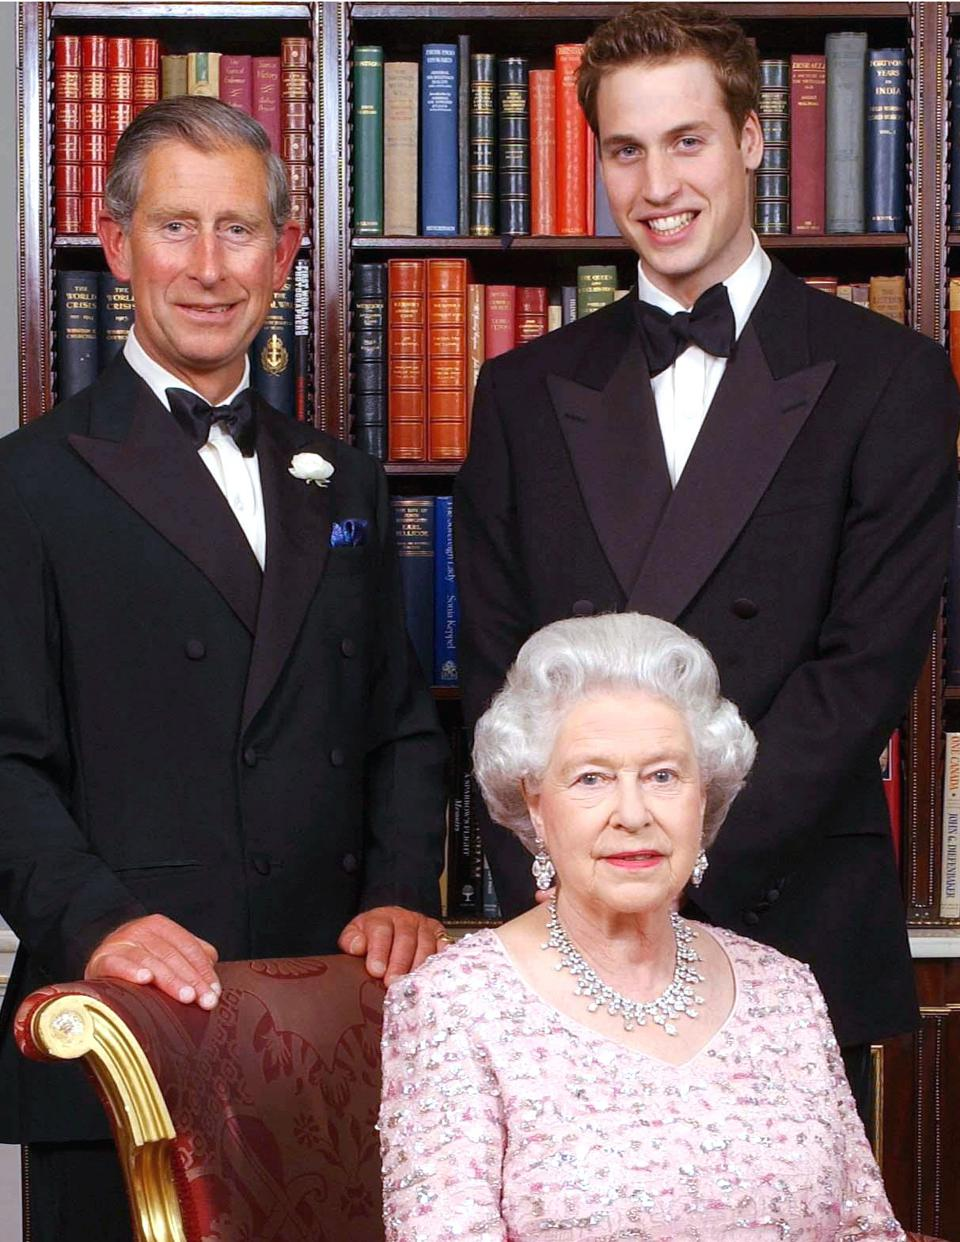 Queen, Charles and William